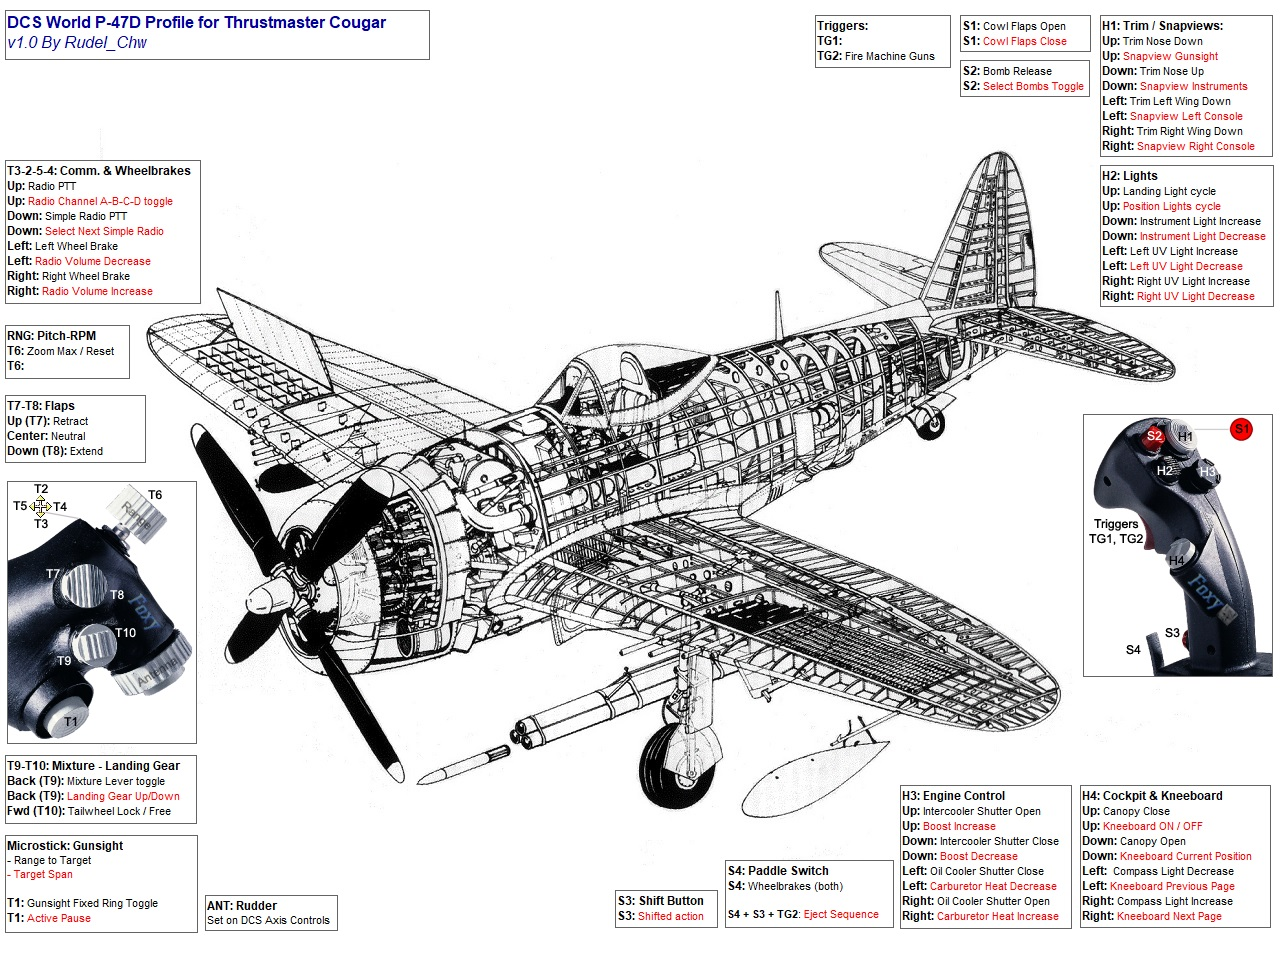 TM Hotas Cougar profile for DCS P-47D